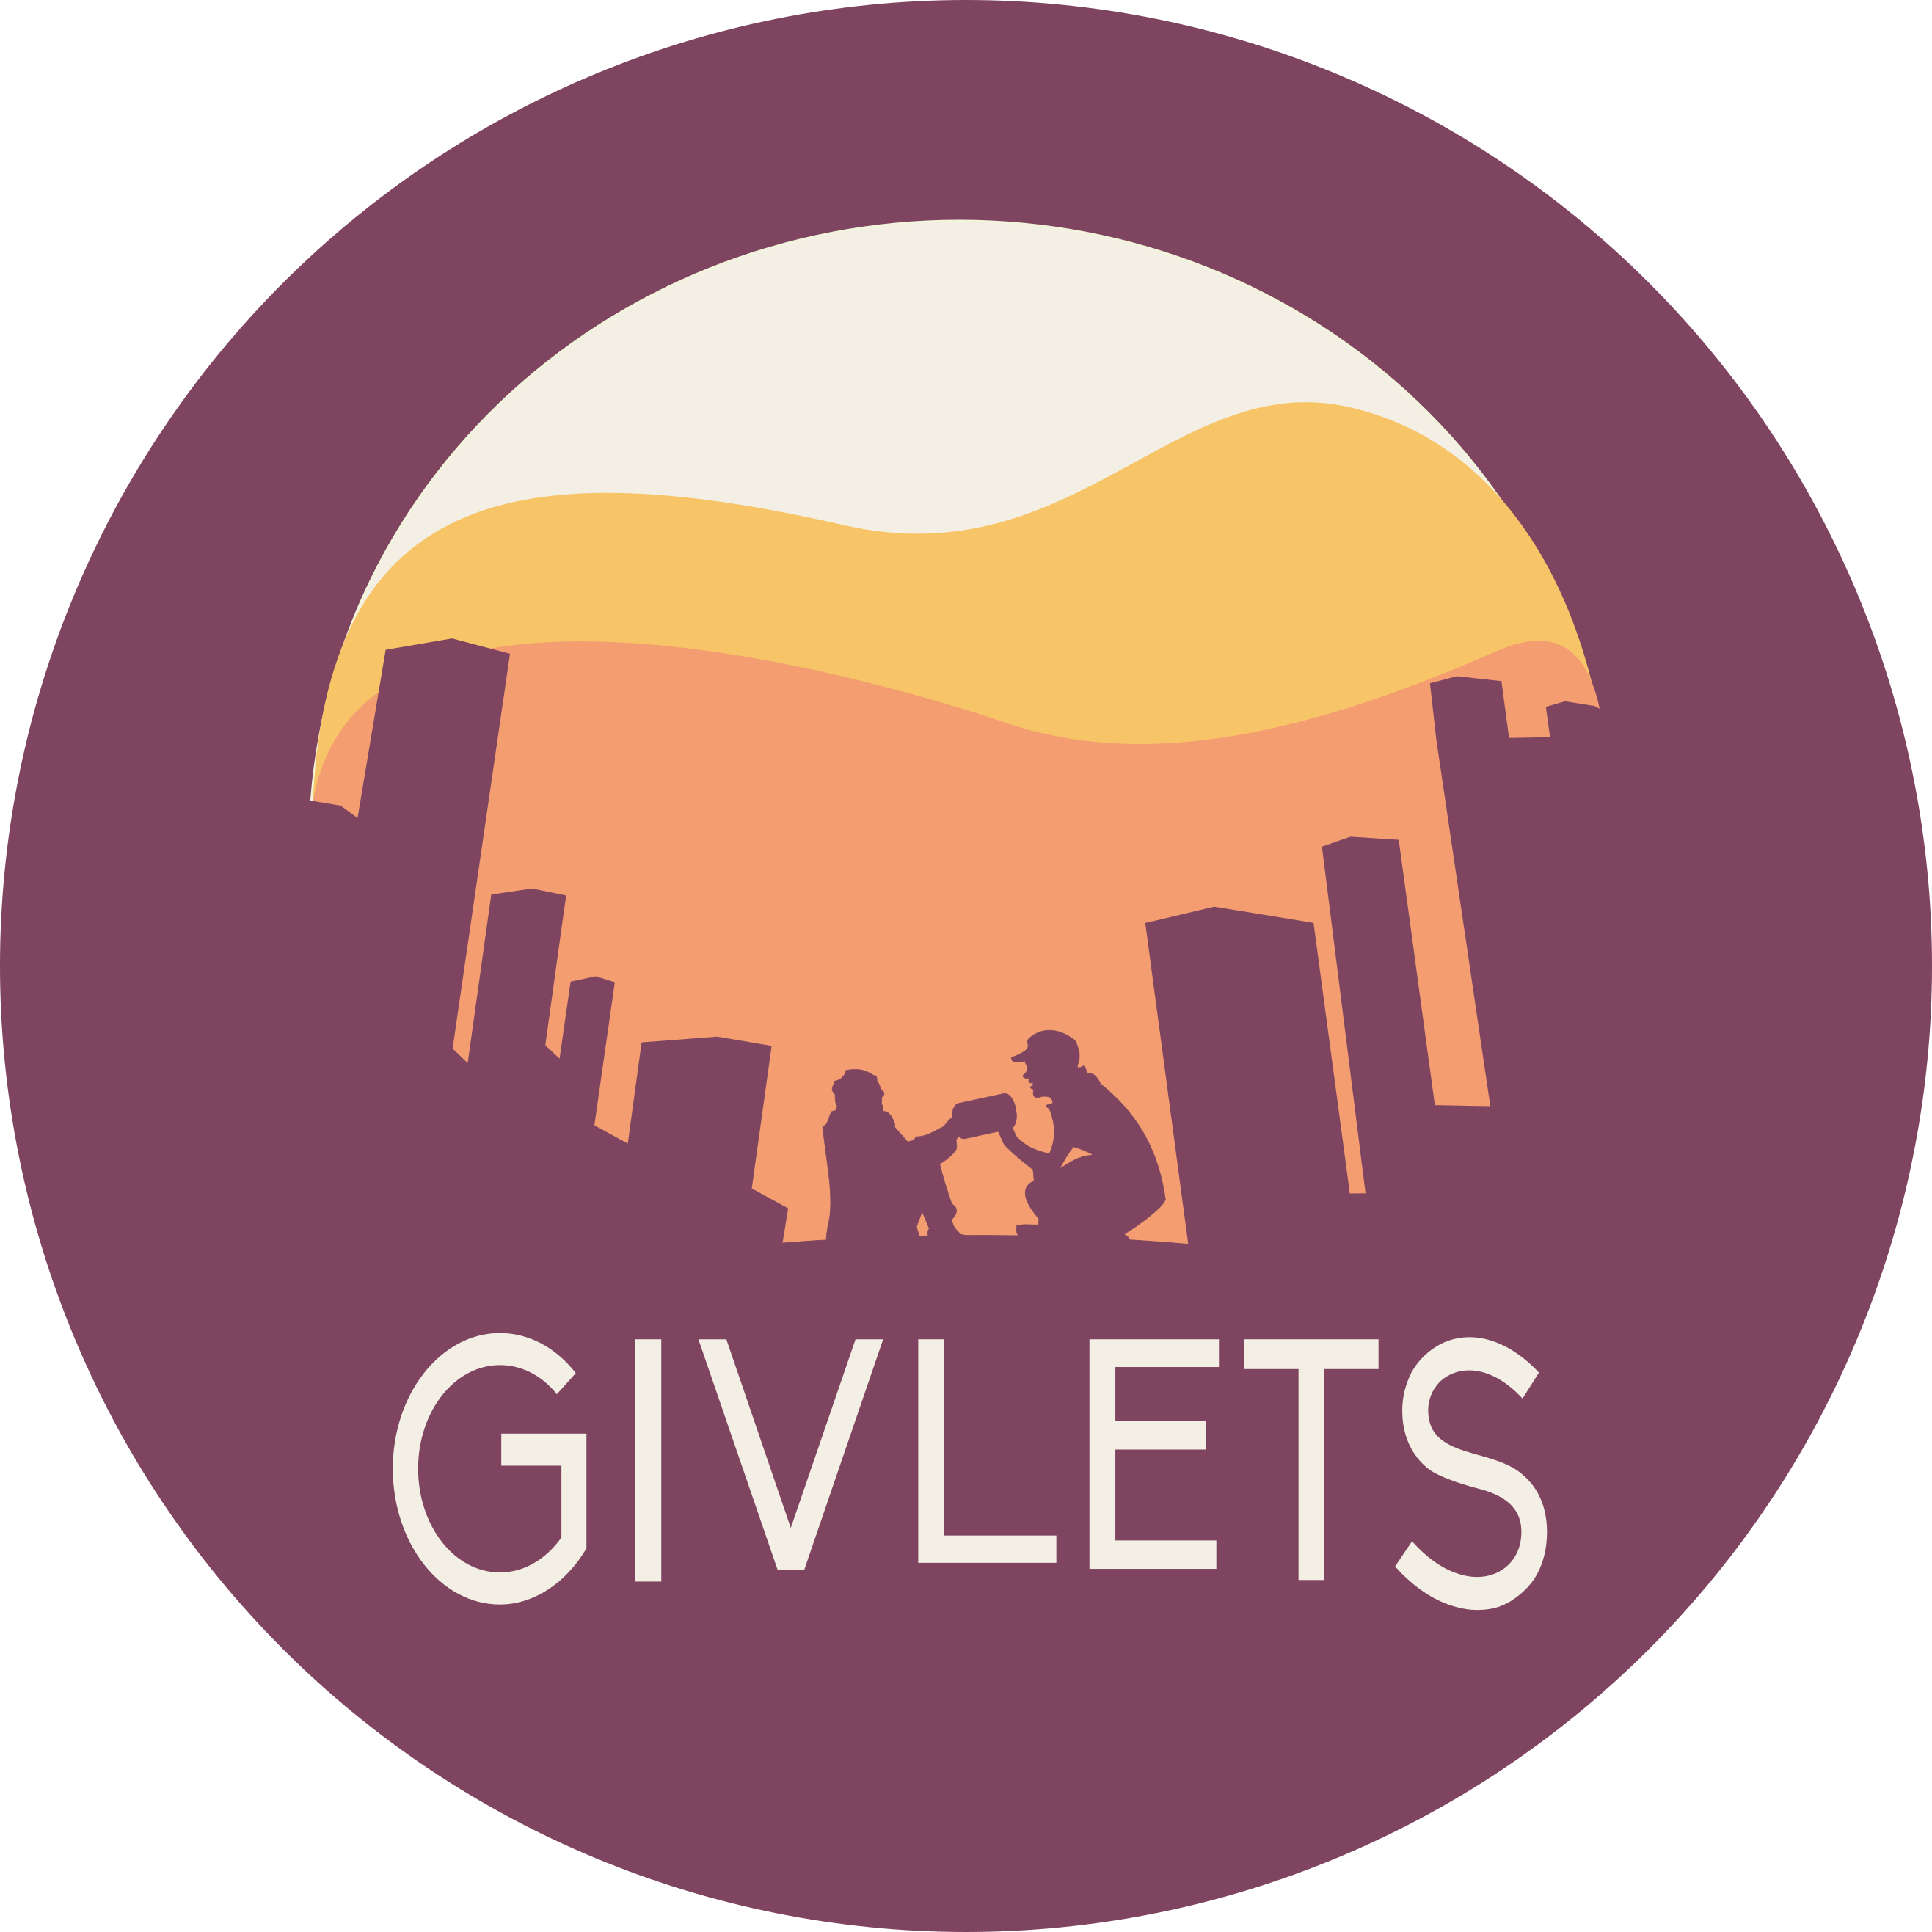 Givlets - Simply Give